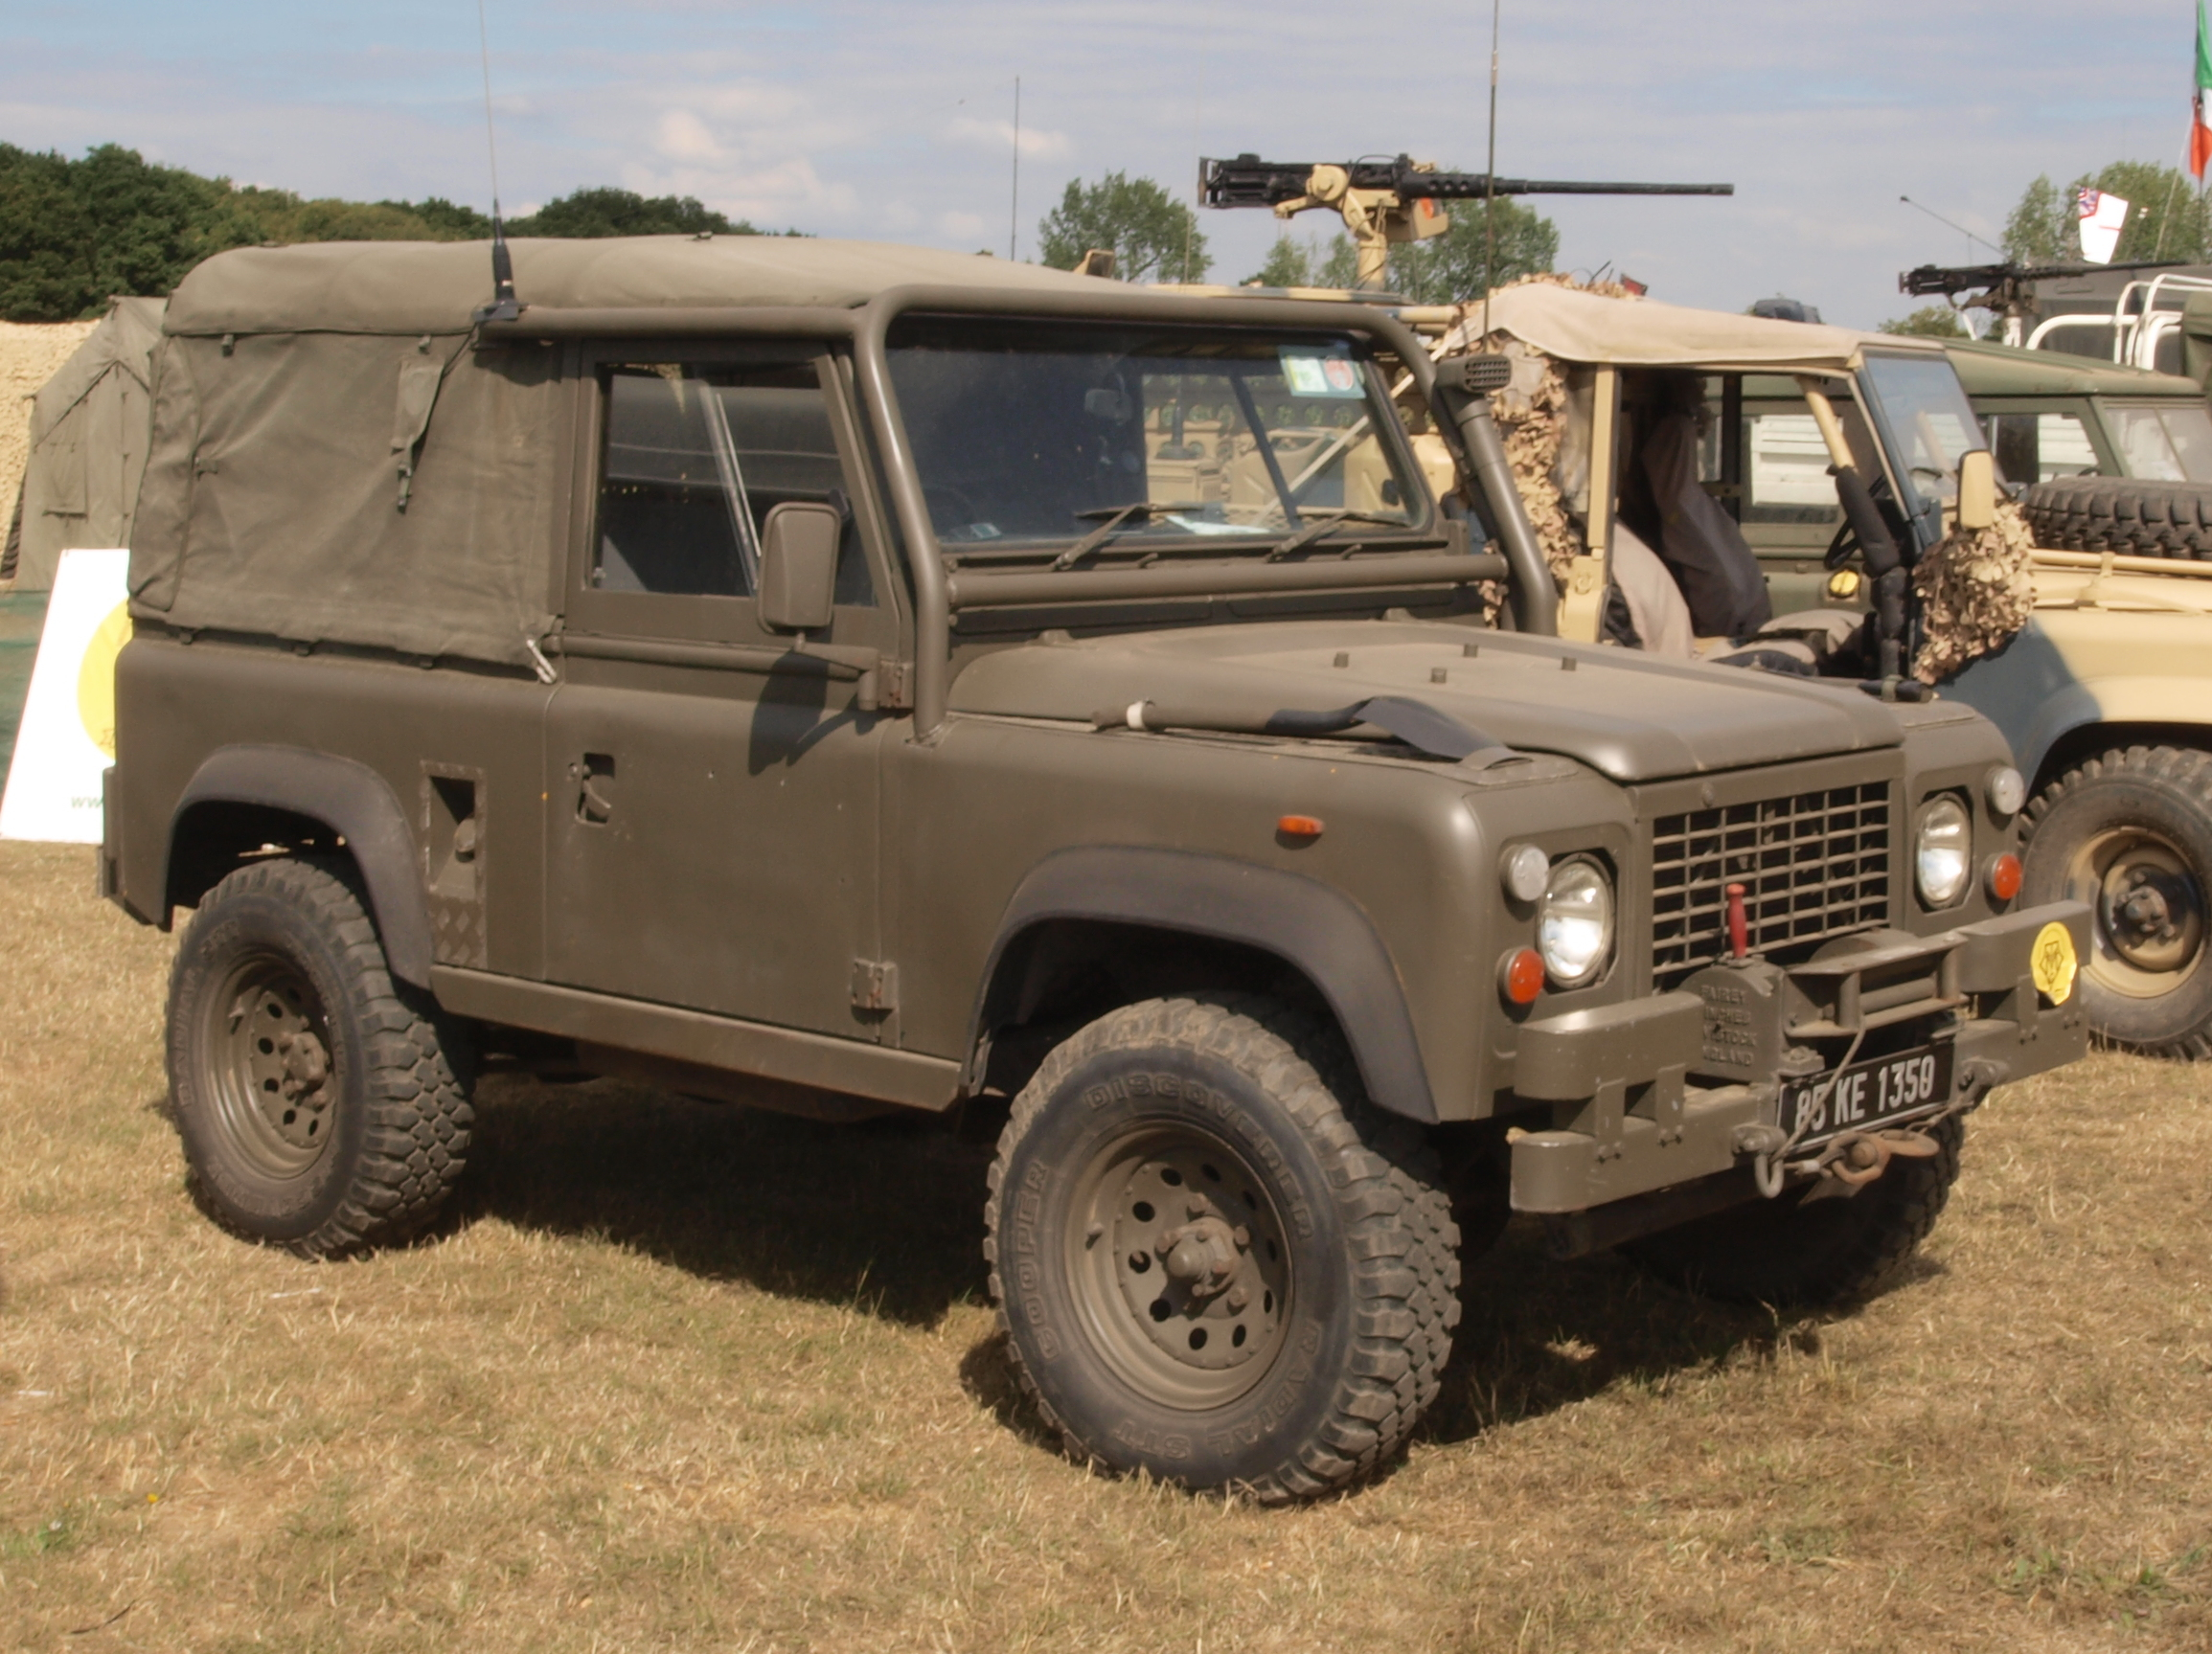 A British Land Rover. This militarized land rover is another prime example of a light utility vehicle, which is essentially a military SUV.